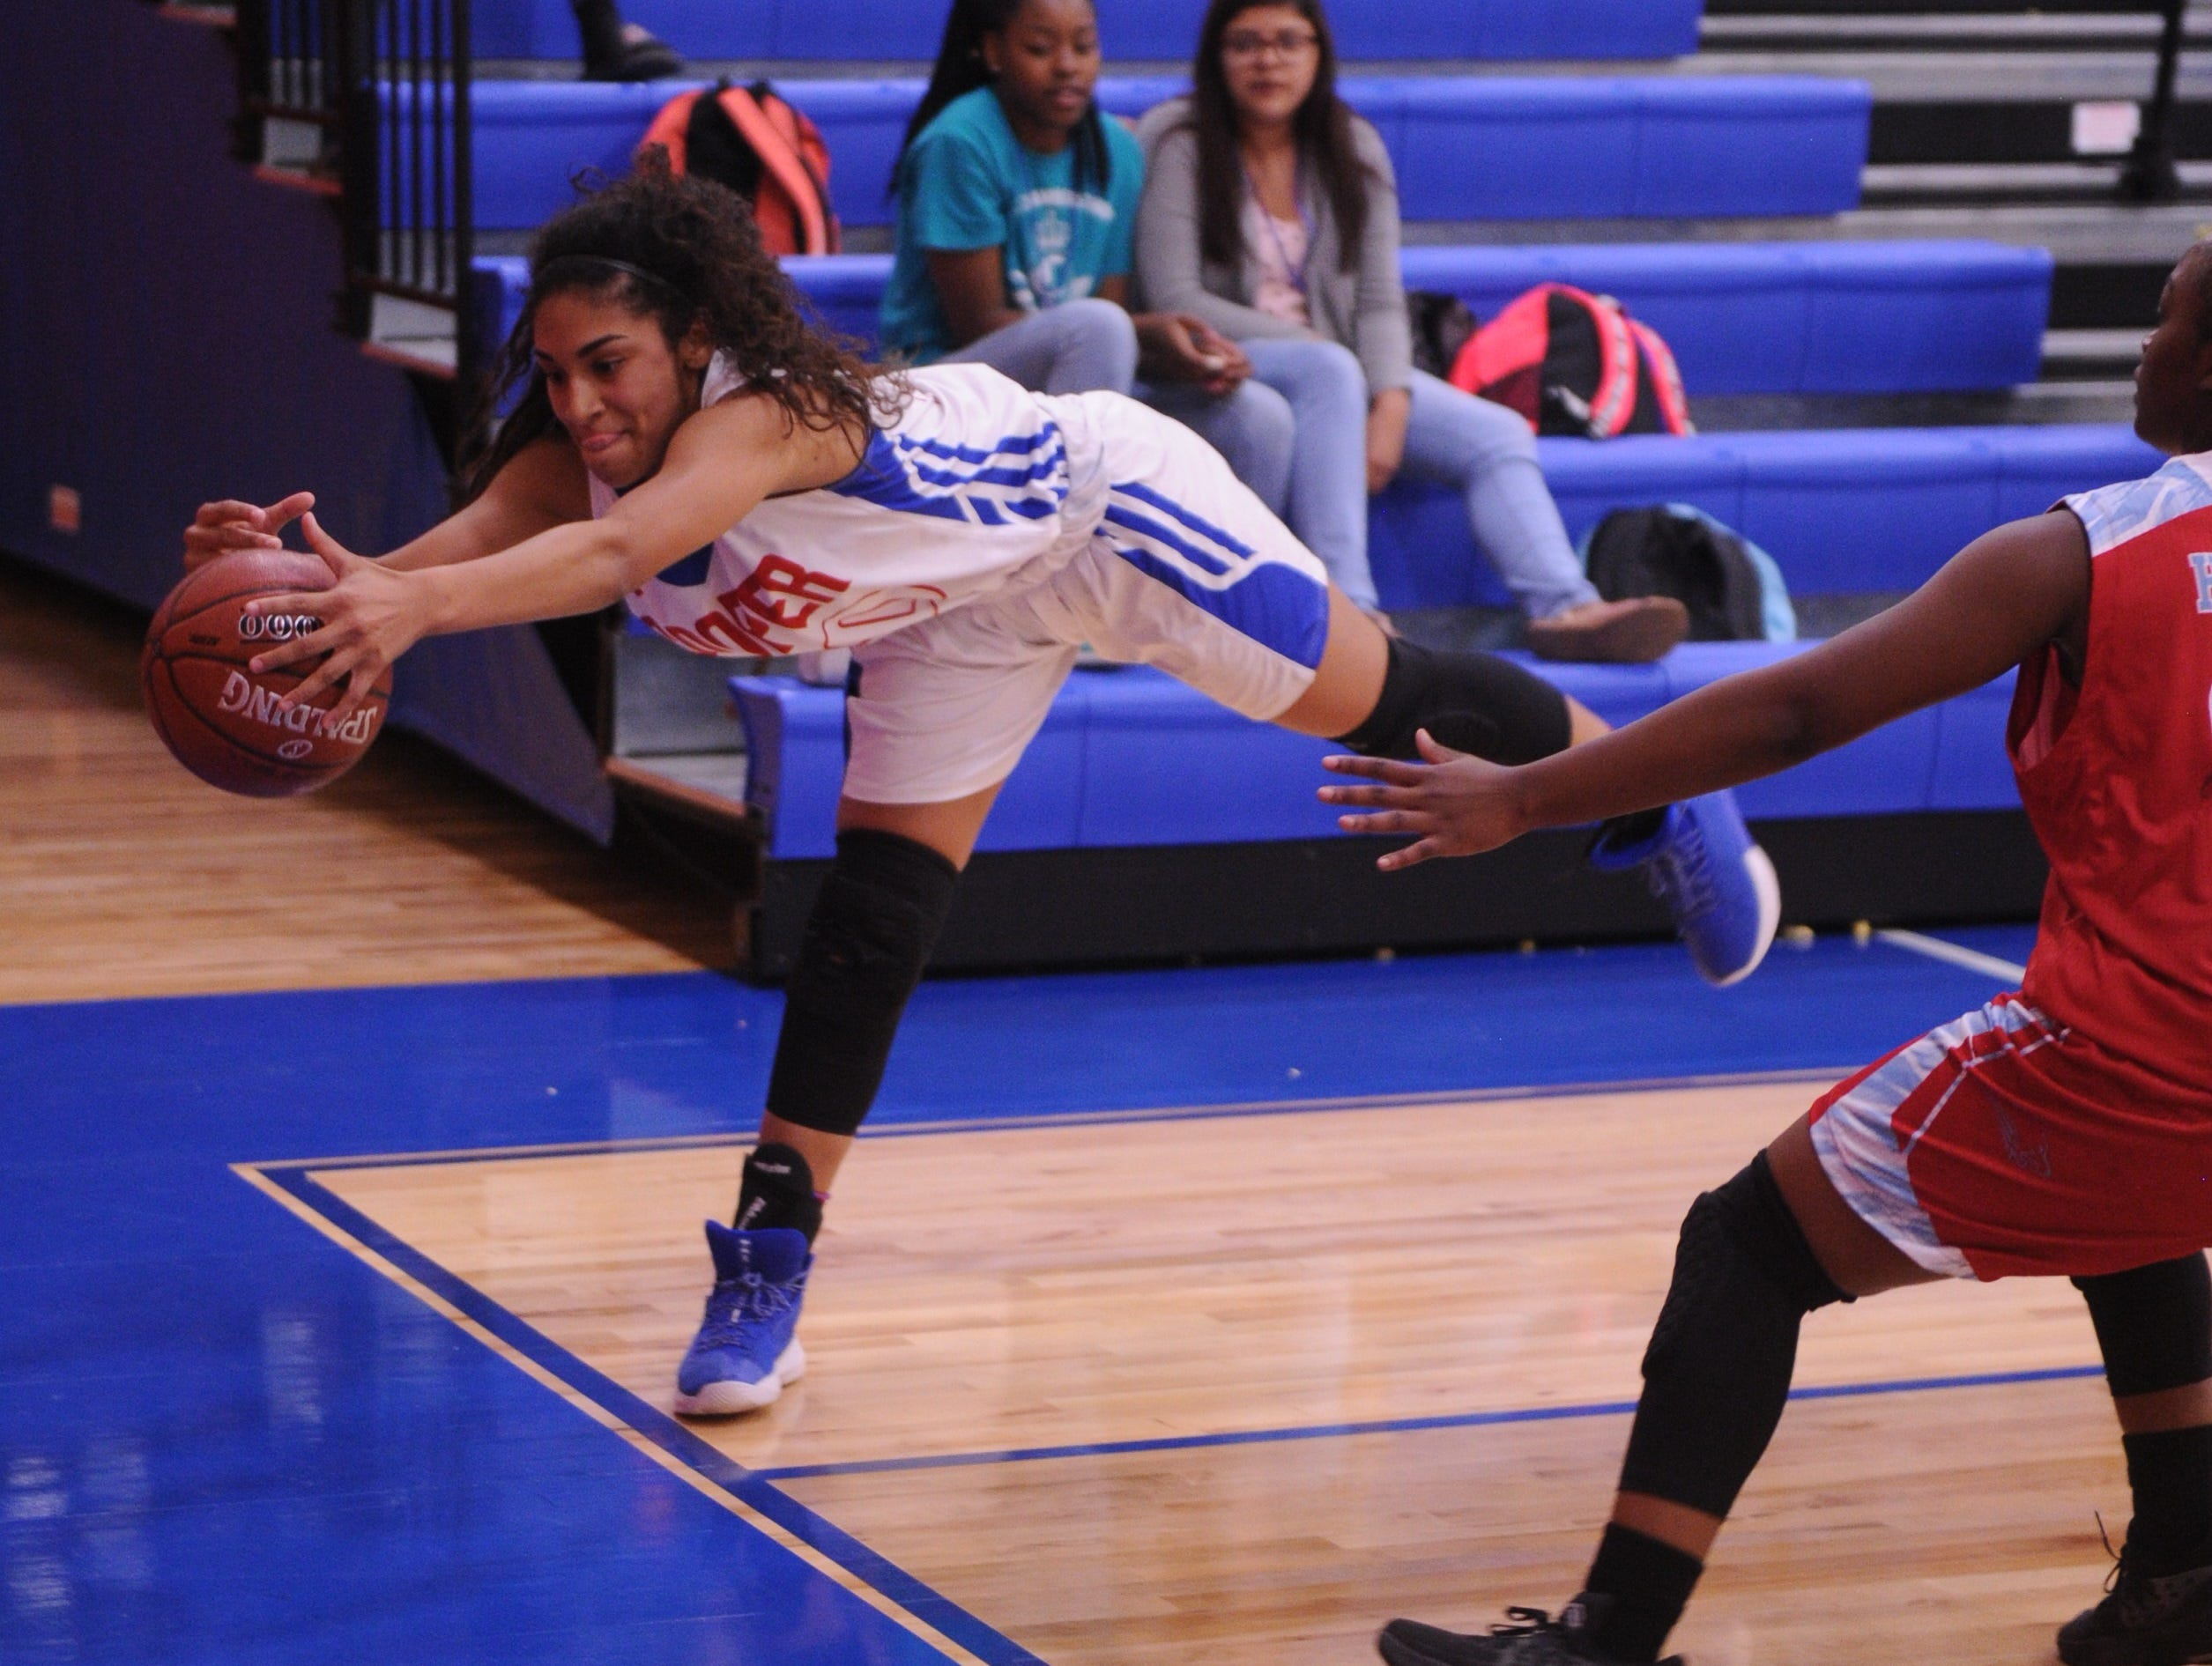 Cooper's Keiana Kemp, left, tries to come up with a loose ball before it goes out of bounds as a Wichita Falls Hirschi player defends. Hirschi won the game 51-37 in the season opener for both teams Tuesday, Nov. 6, 2018, at Cougar Gym.